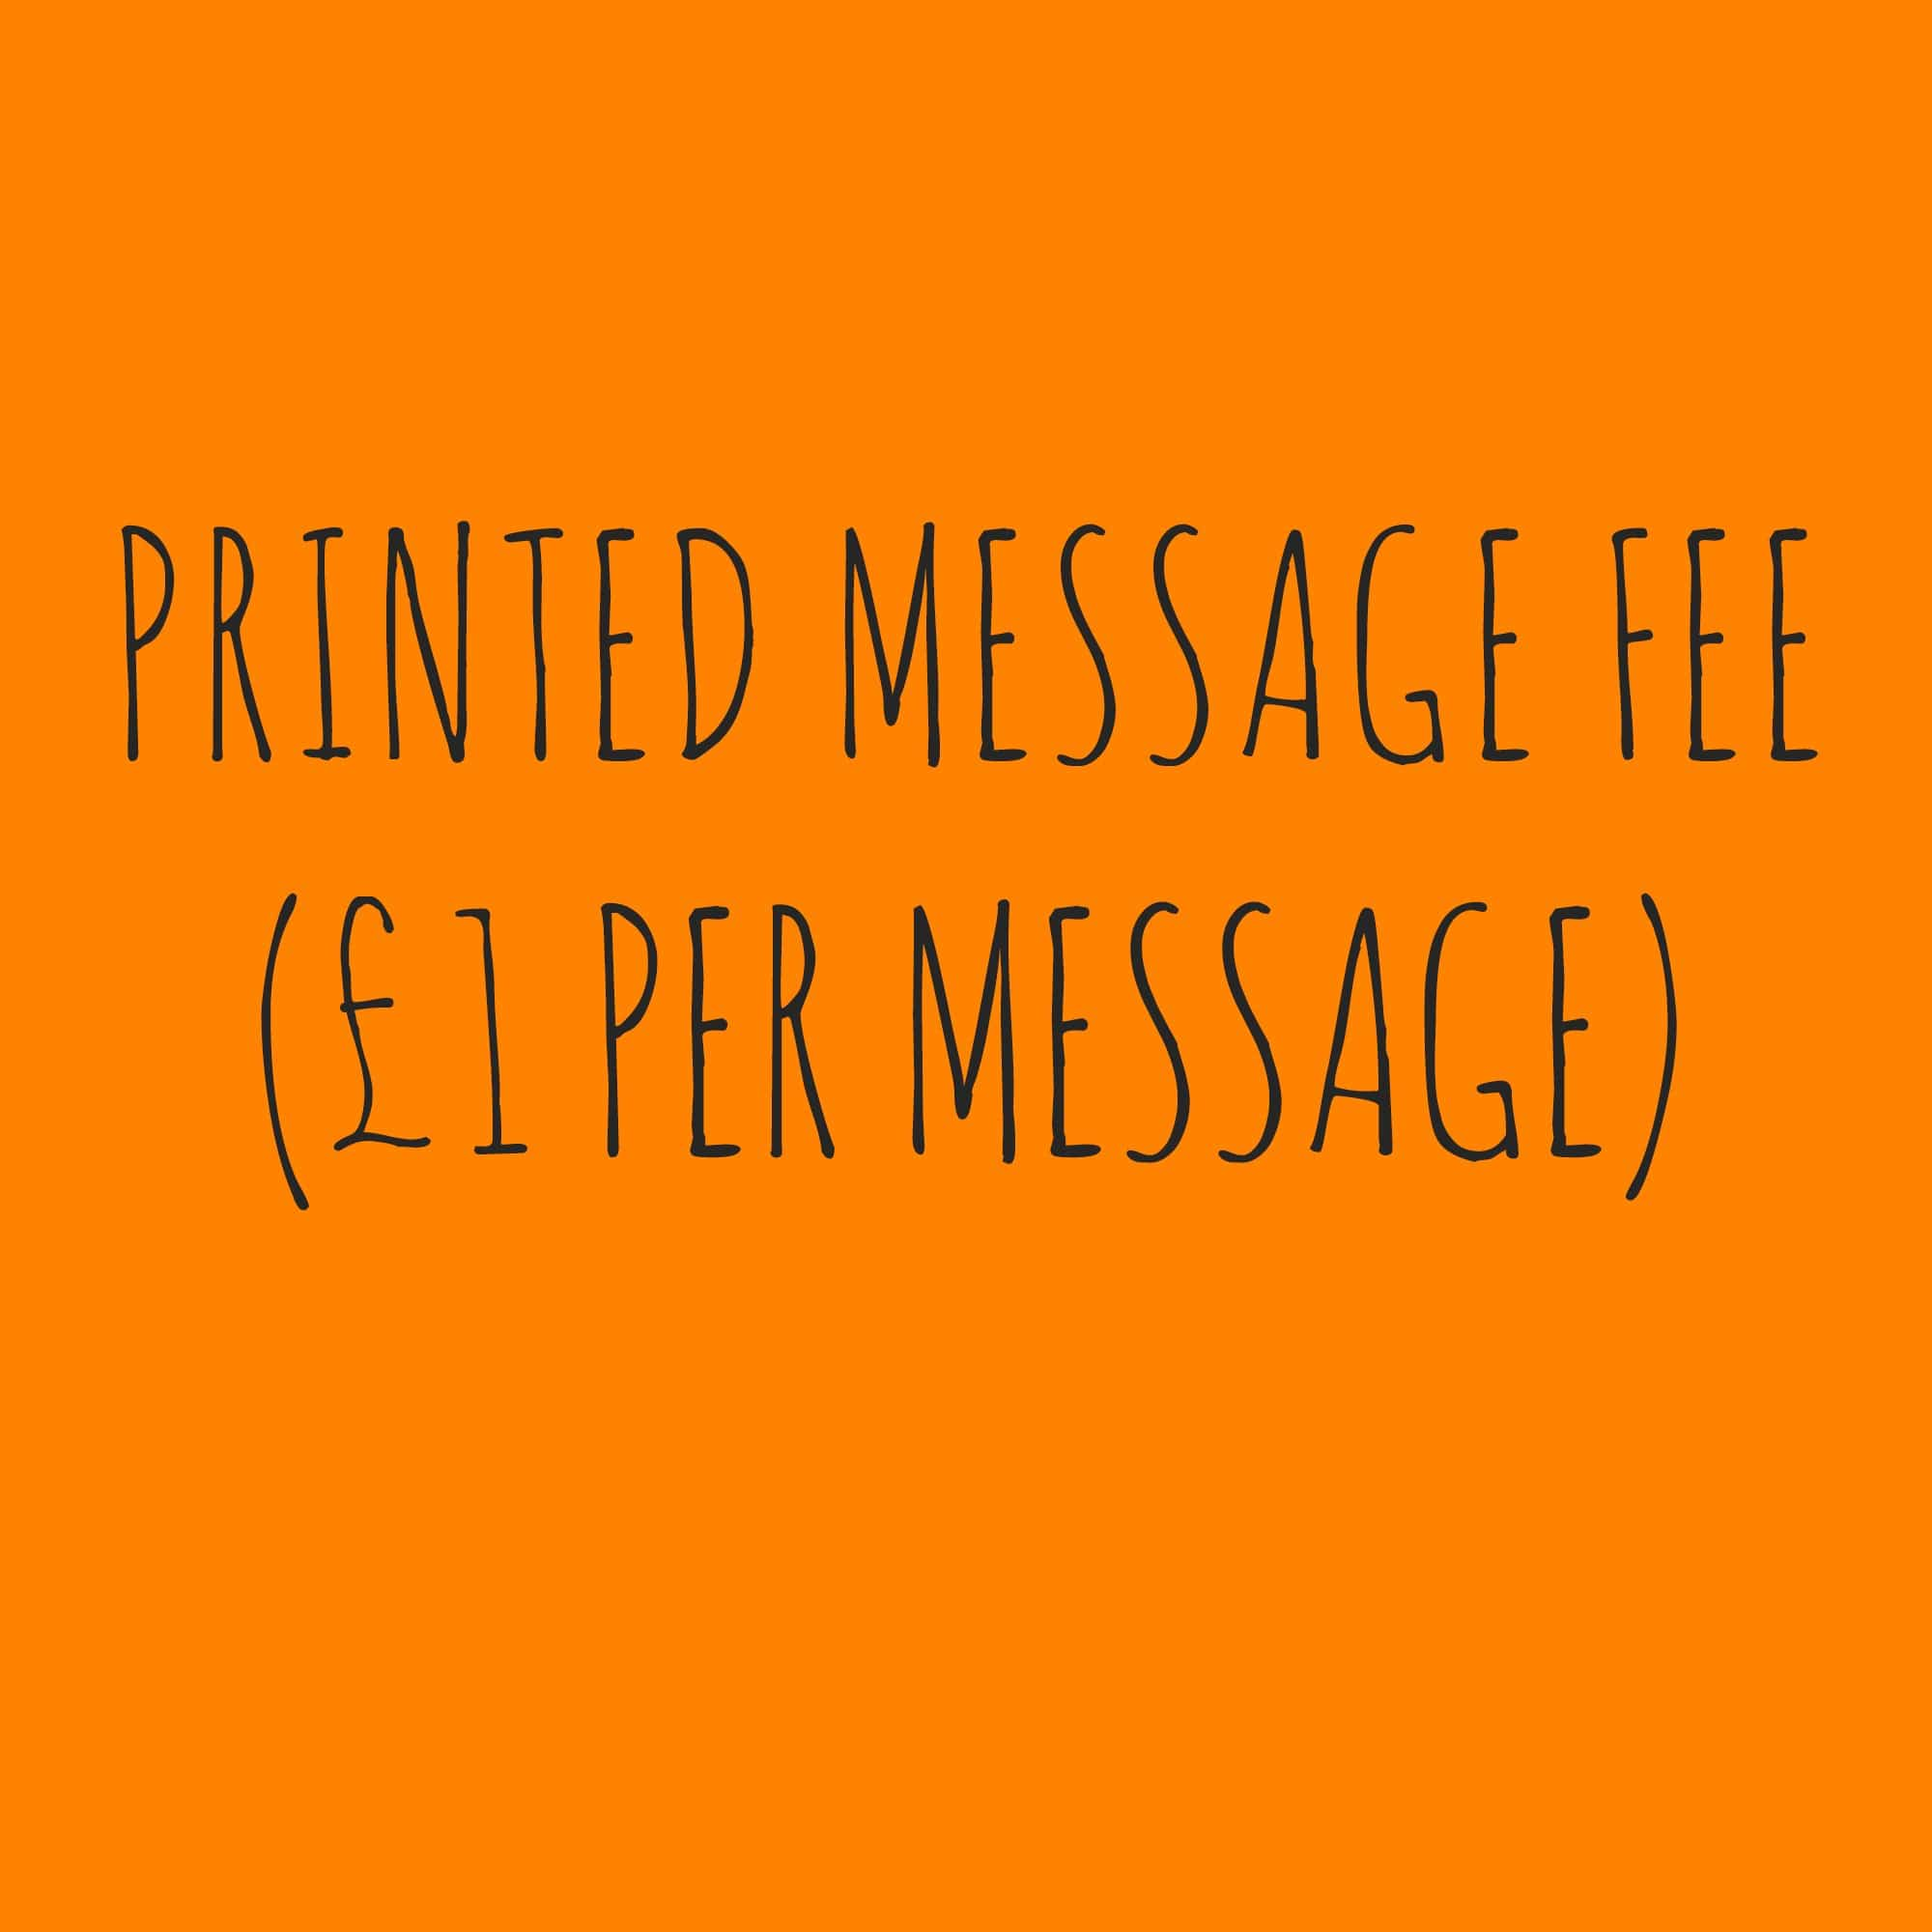 PRINTED MESSAGE FEE (DO NOT REMOVE)